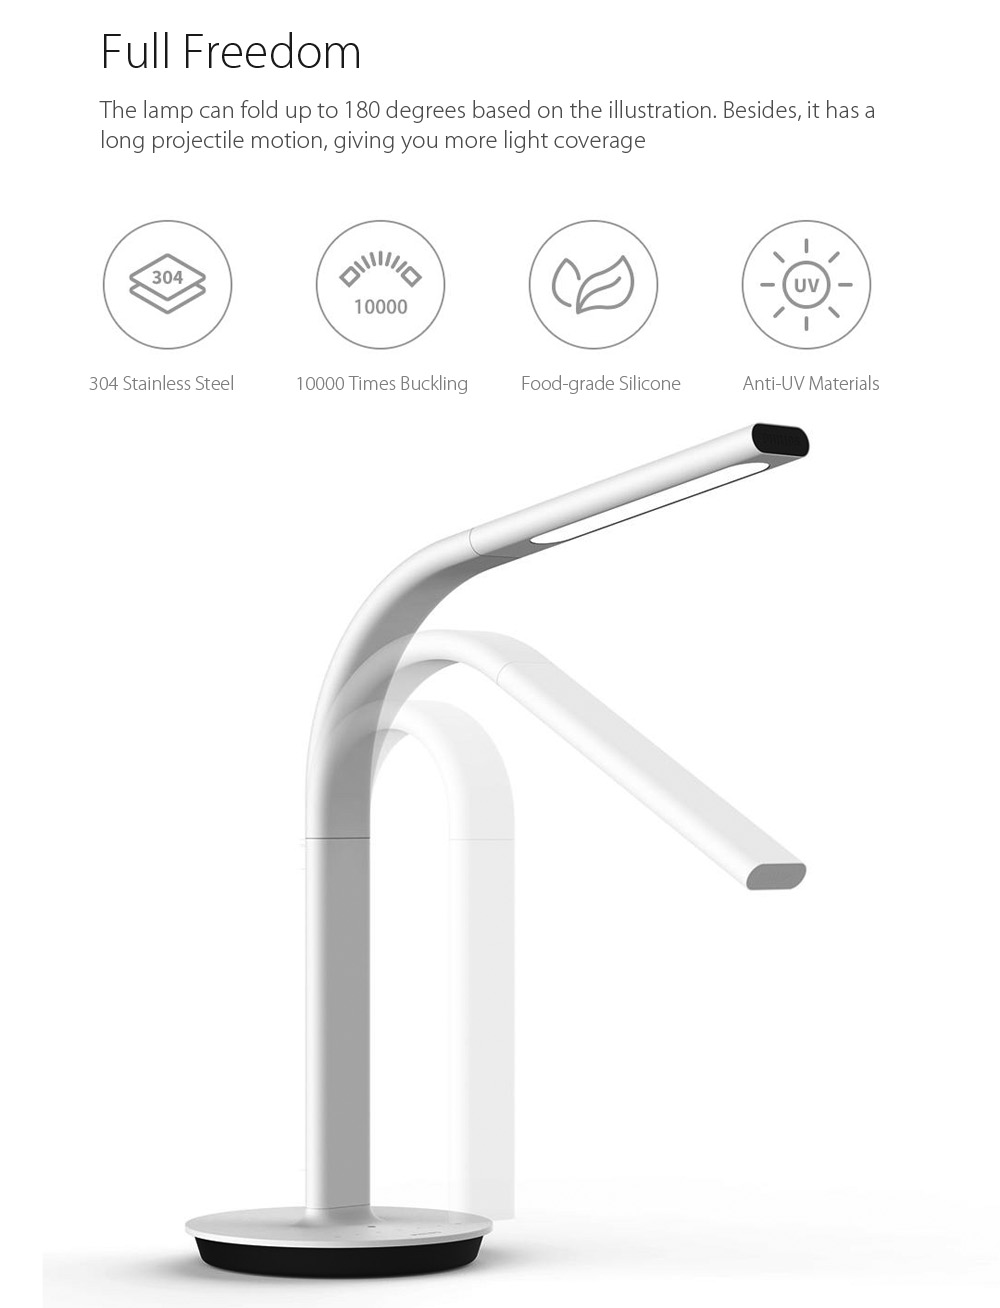 Original Xiaomi Philips Eyecare Smart Lamp 2 App Dimming 4 Lighting Scenes